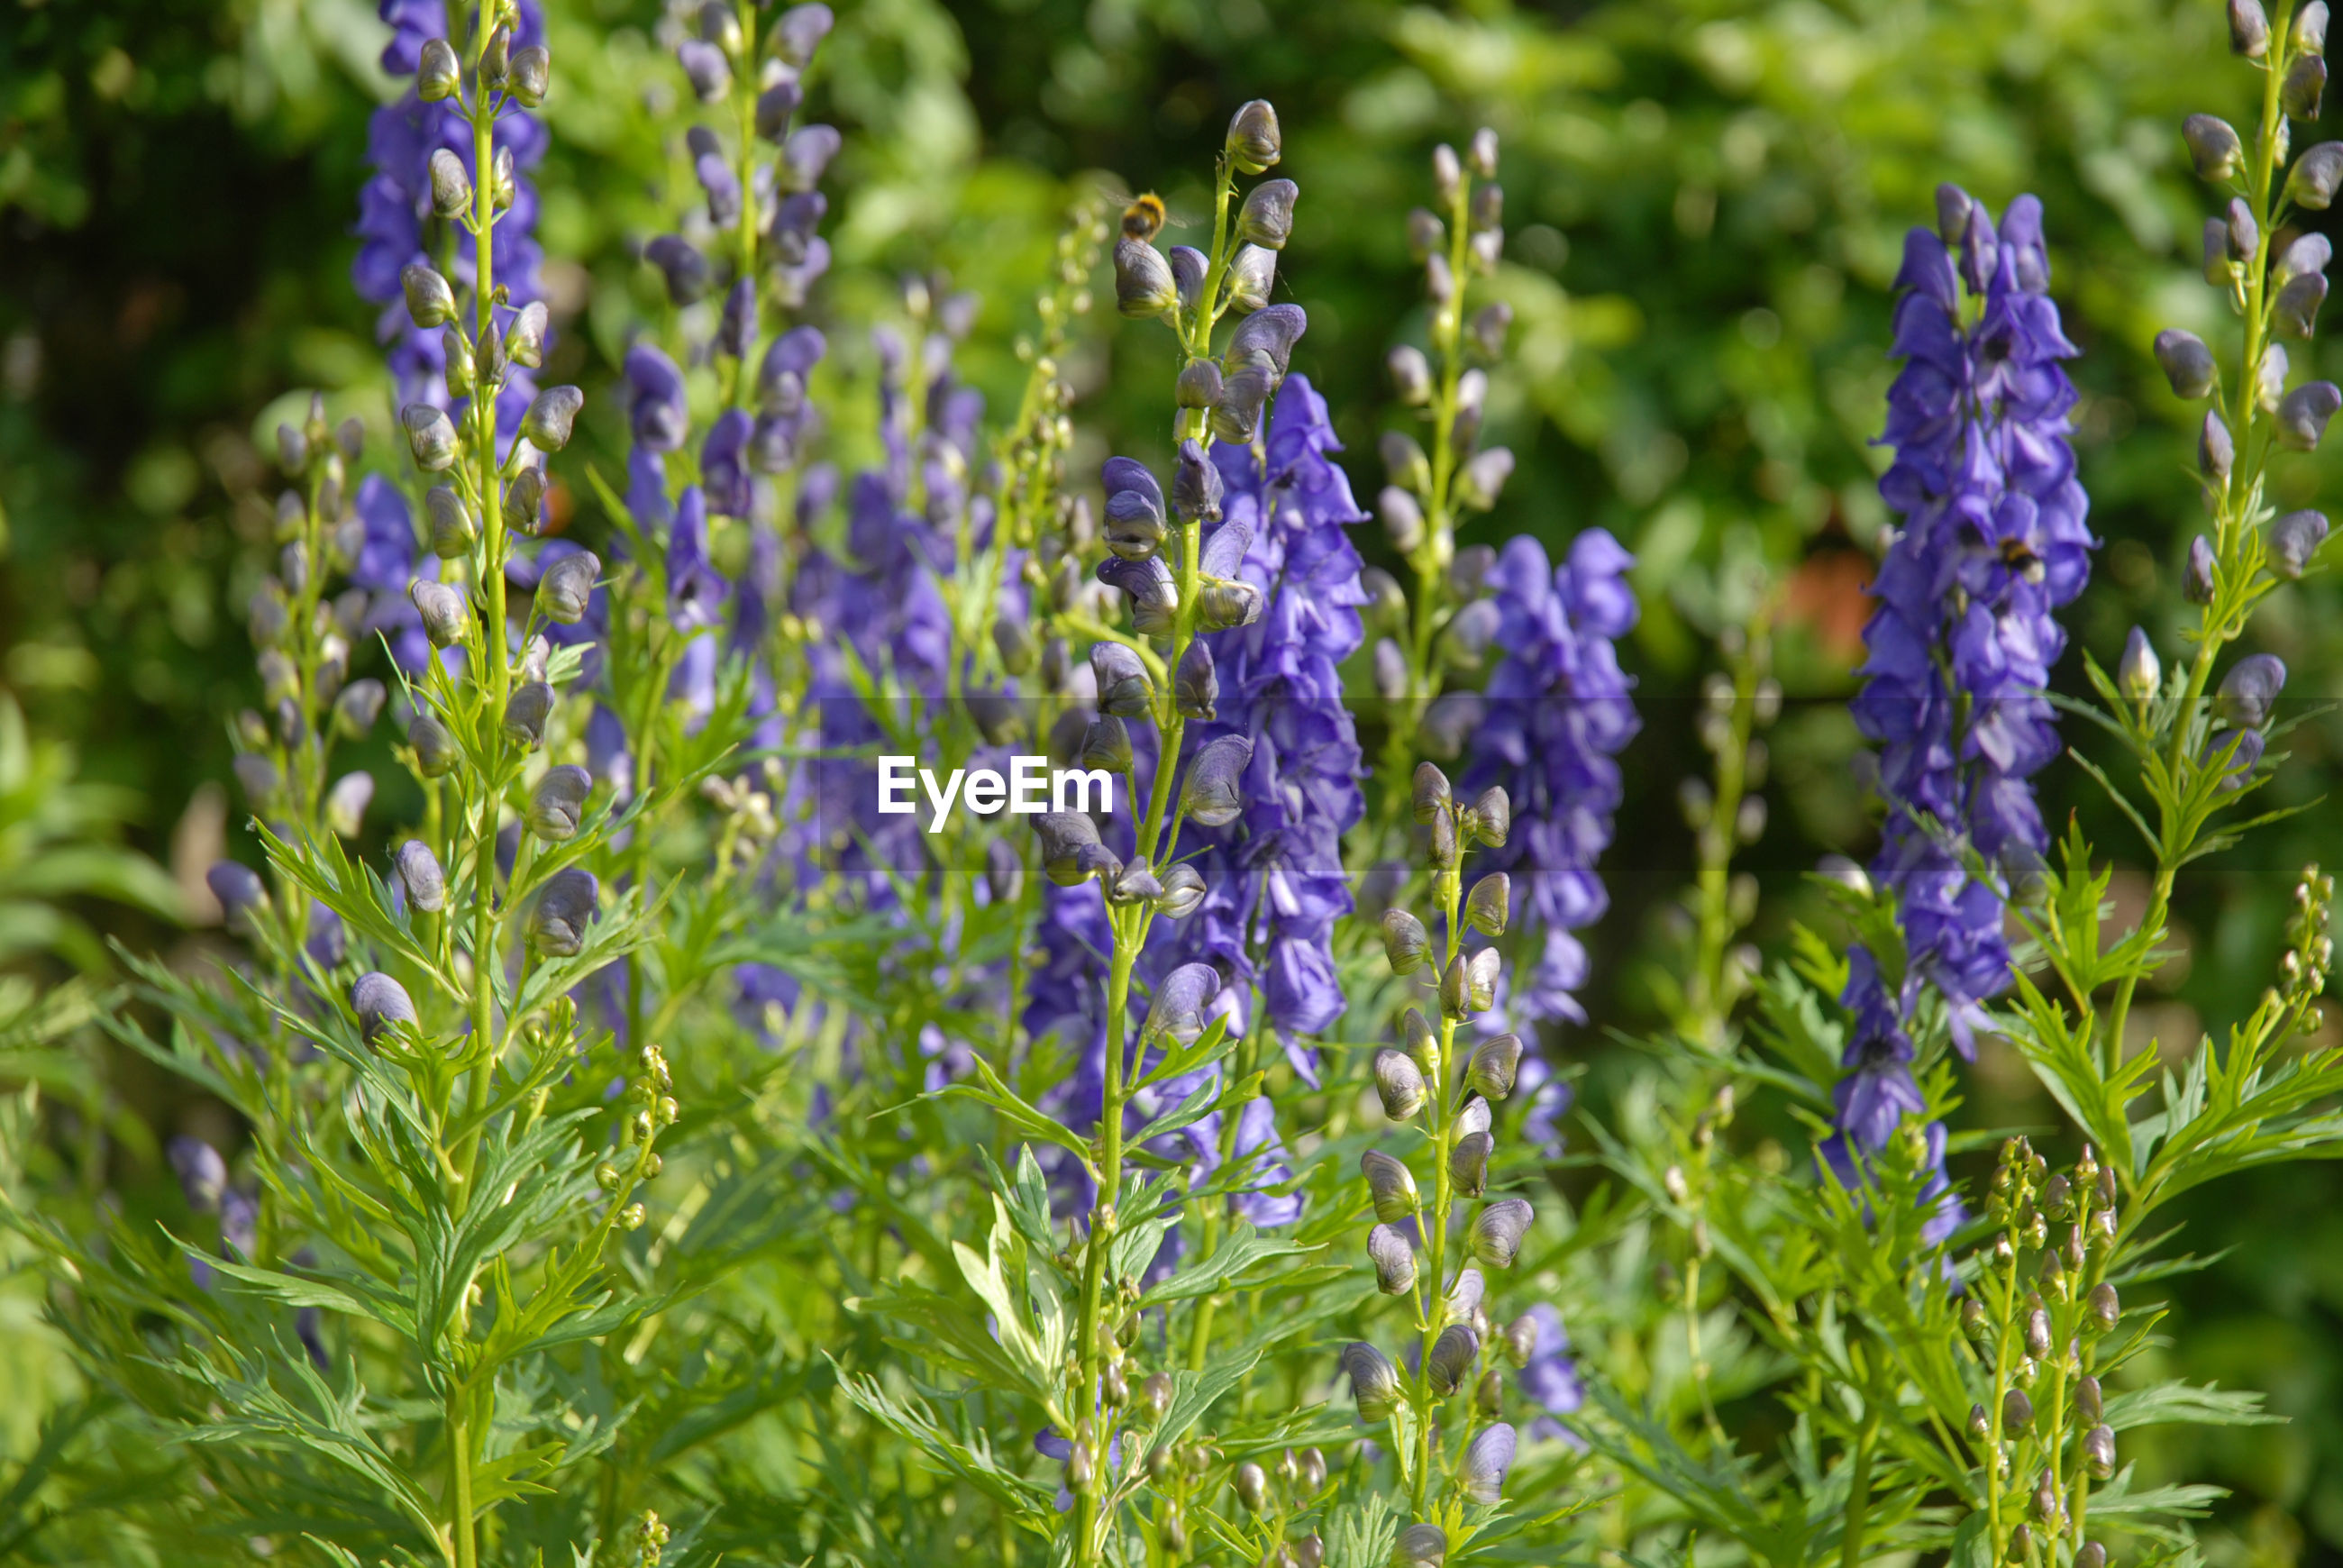 Aconitum napellus, also known as monkshood or wolf's bane, a poisonous perennial herb